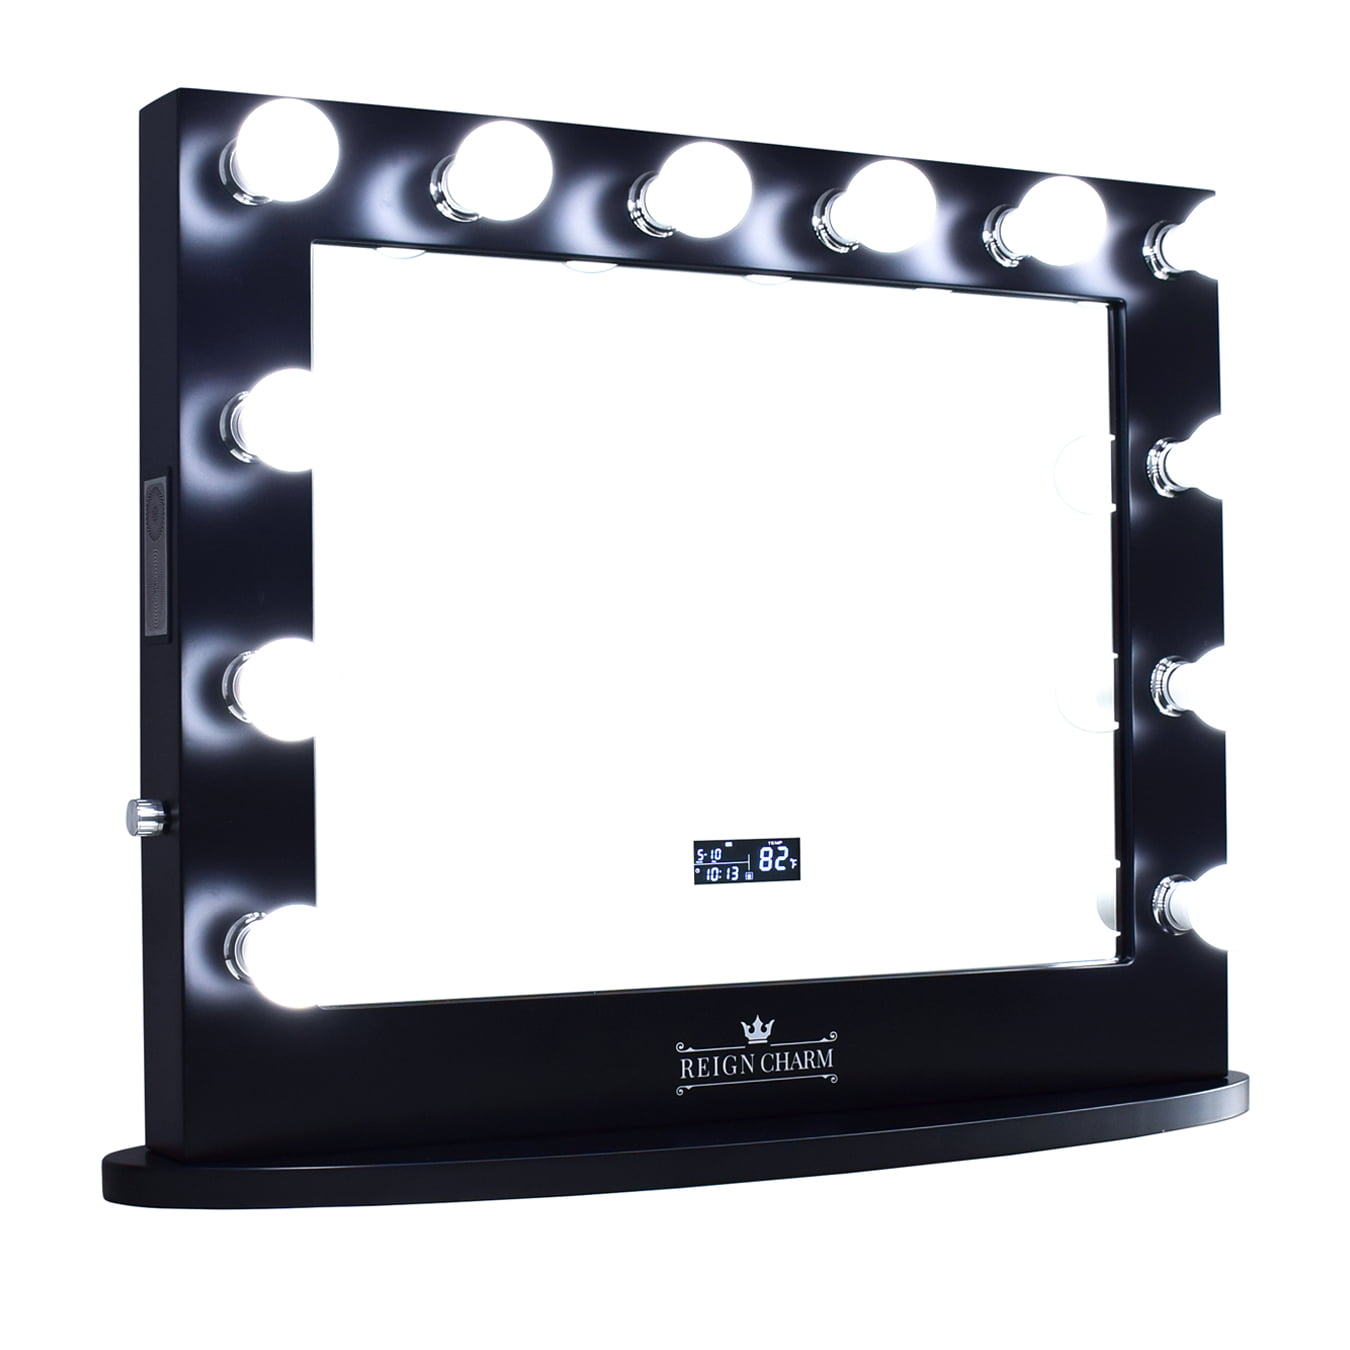 ReignCharm Hollywood Vanity Mirror with Bluetooth Speakers, 12 LED Lights, Dual Outlets & USB, 32-inches x 27-inches,... by ReignCharm